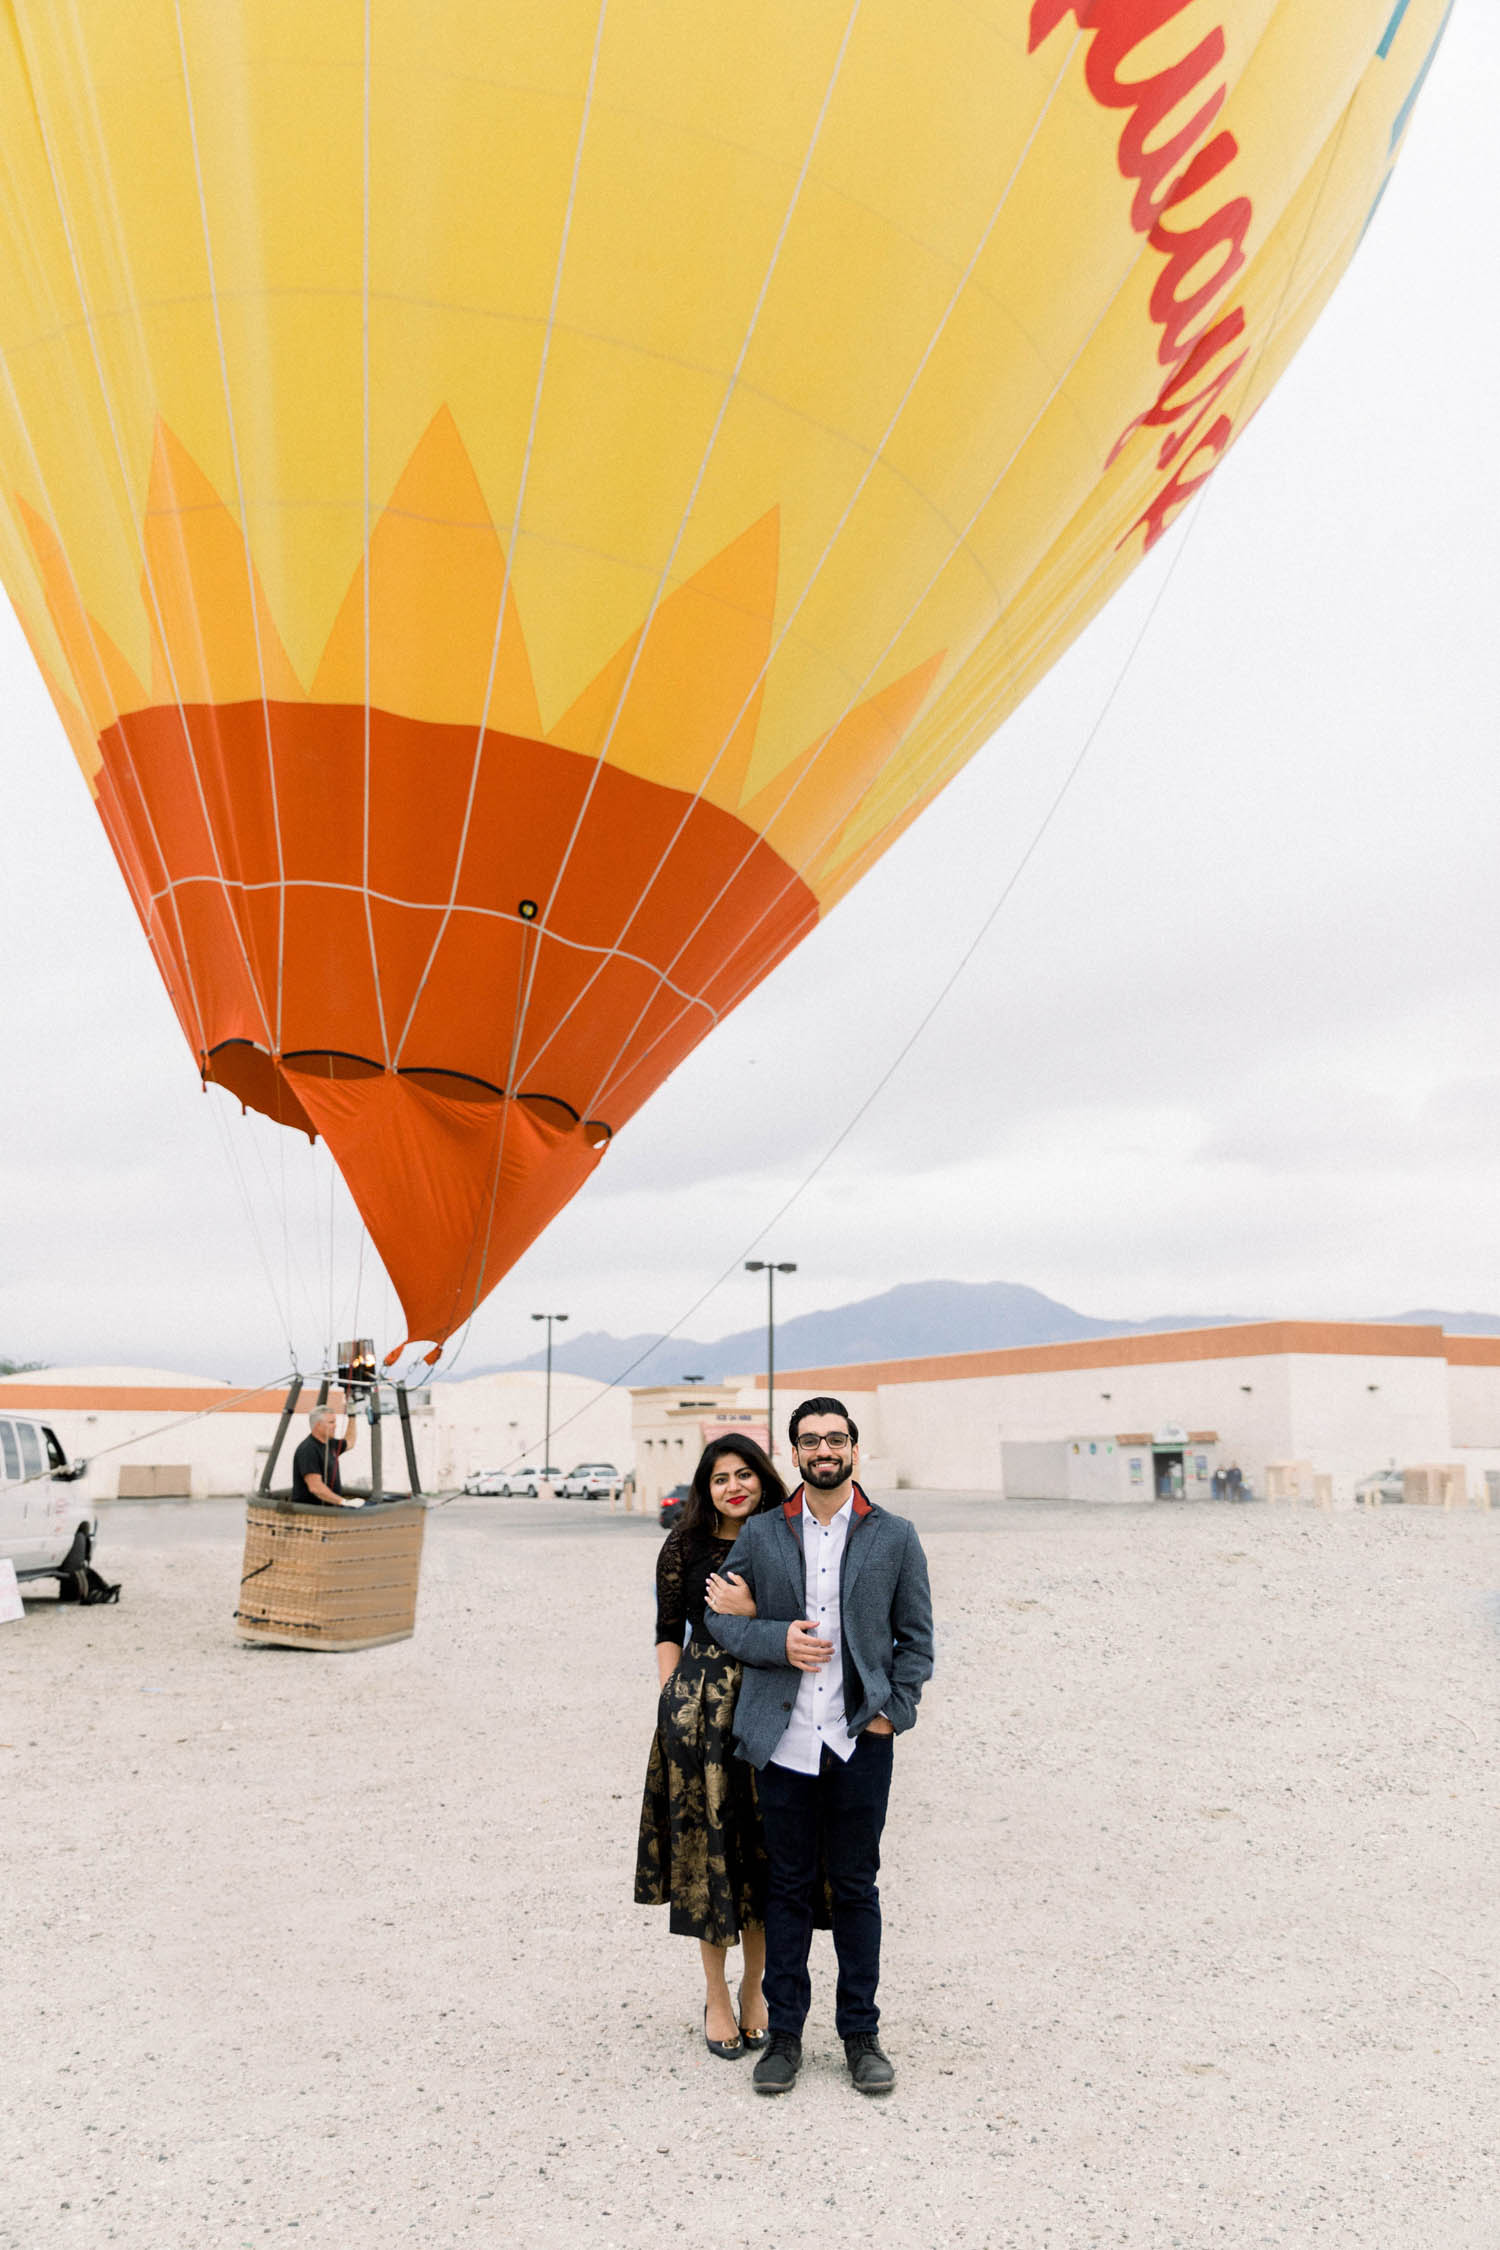 palm_springs_hot_air_balloon_proposal_025.jpg